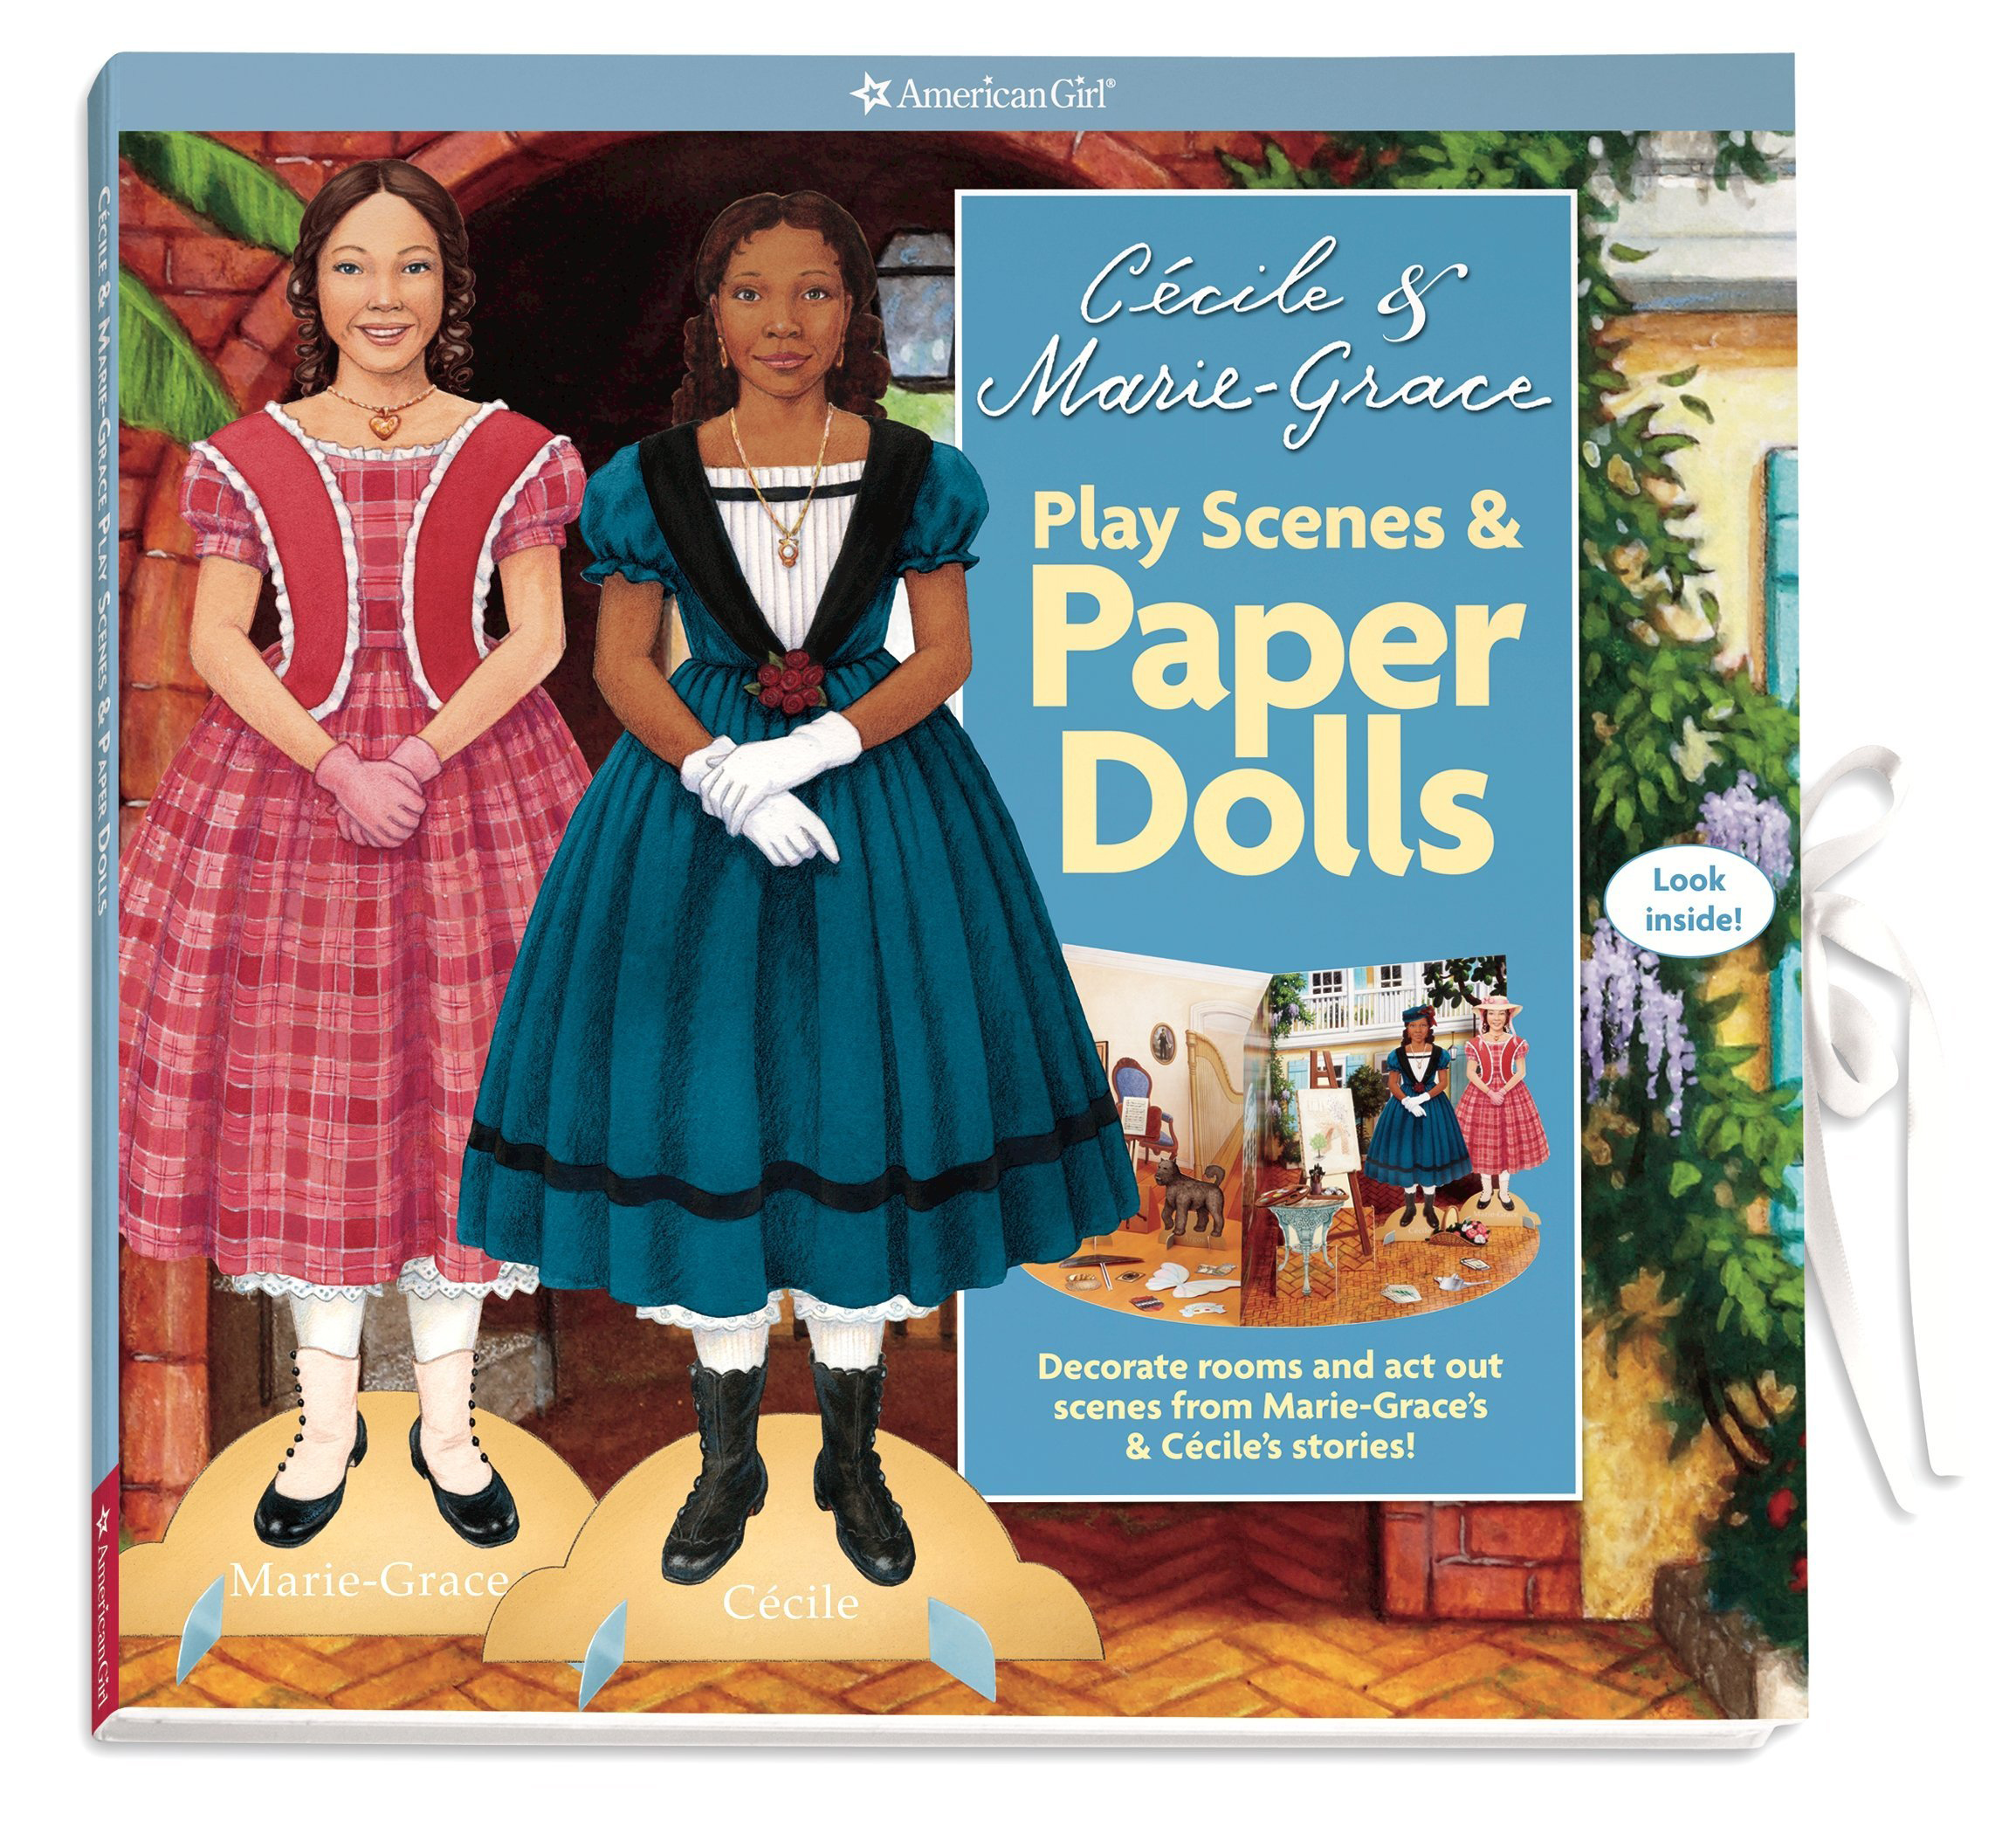 Cécile and Marie-Grace's Play Scenes and Paper Dolls